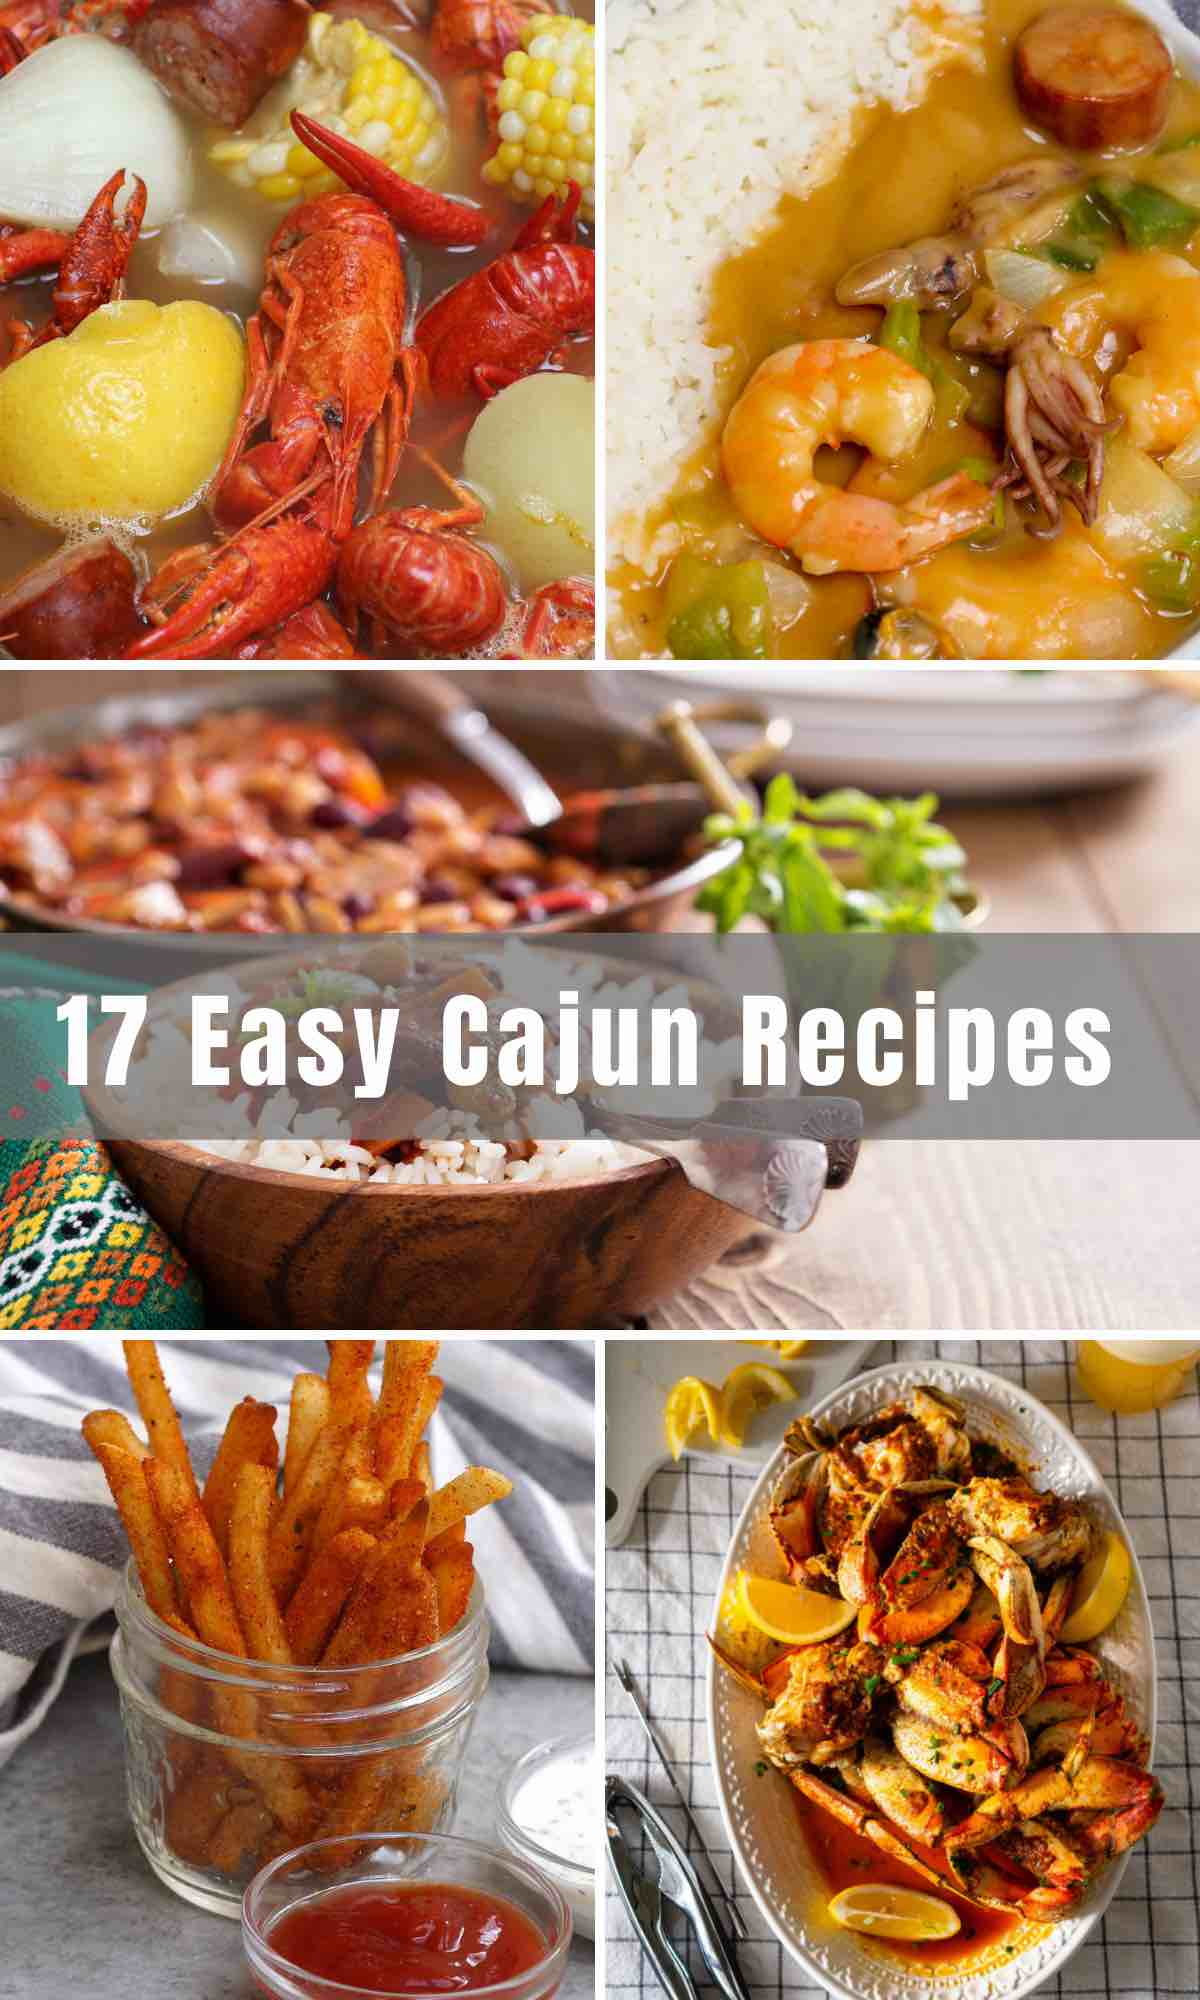 When you're craving something bold, hearty, and full of flavor, you can't go wrong with these Easy Cajun Recipes. Developed in Louisiana, Cajun food is an exciting mix of West African, French, and Spanish cooking.